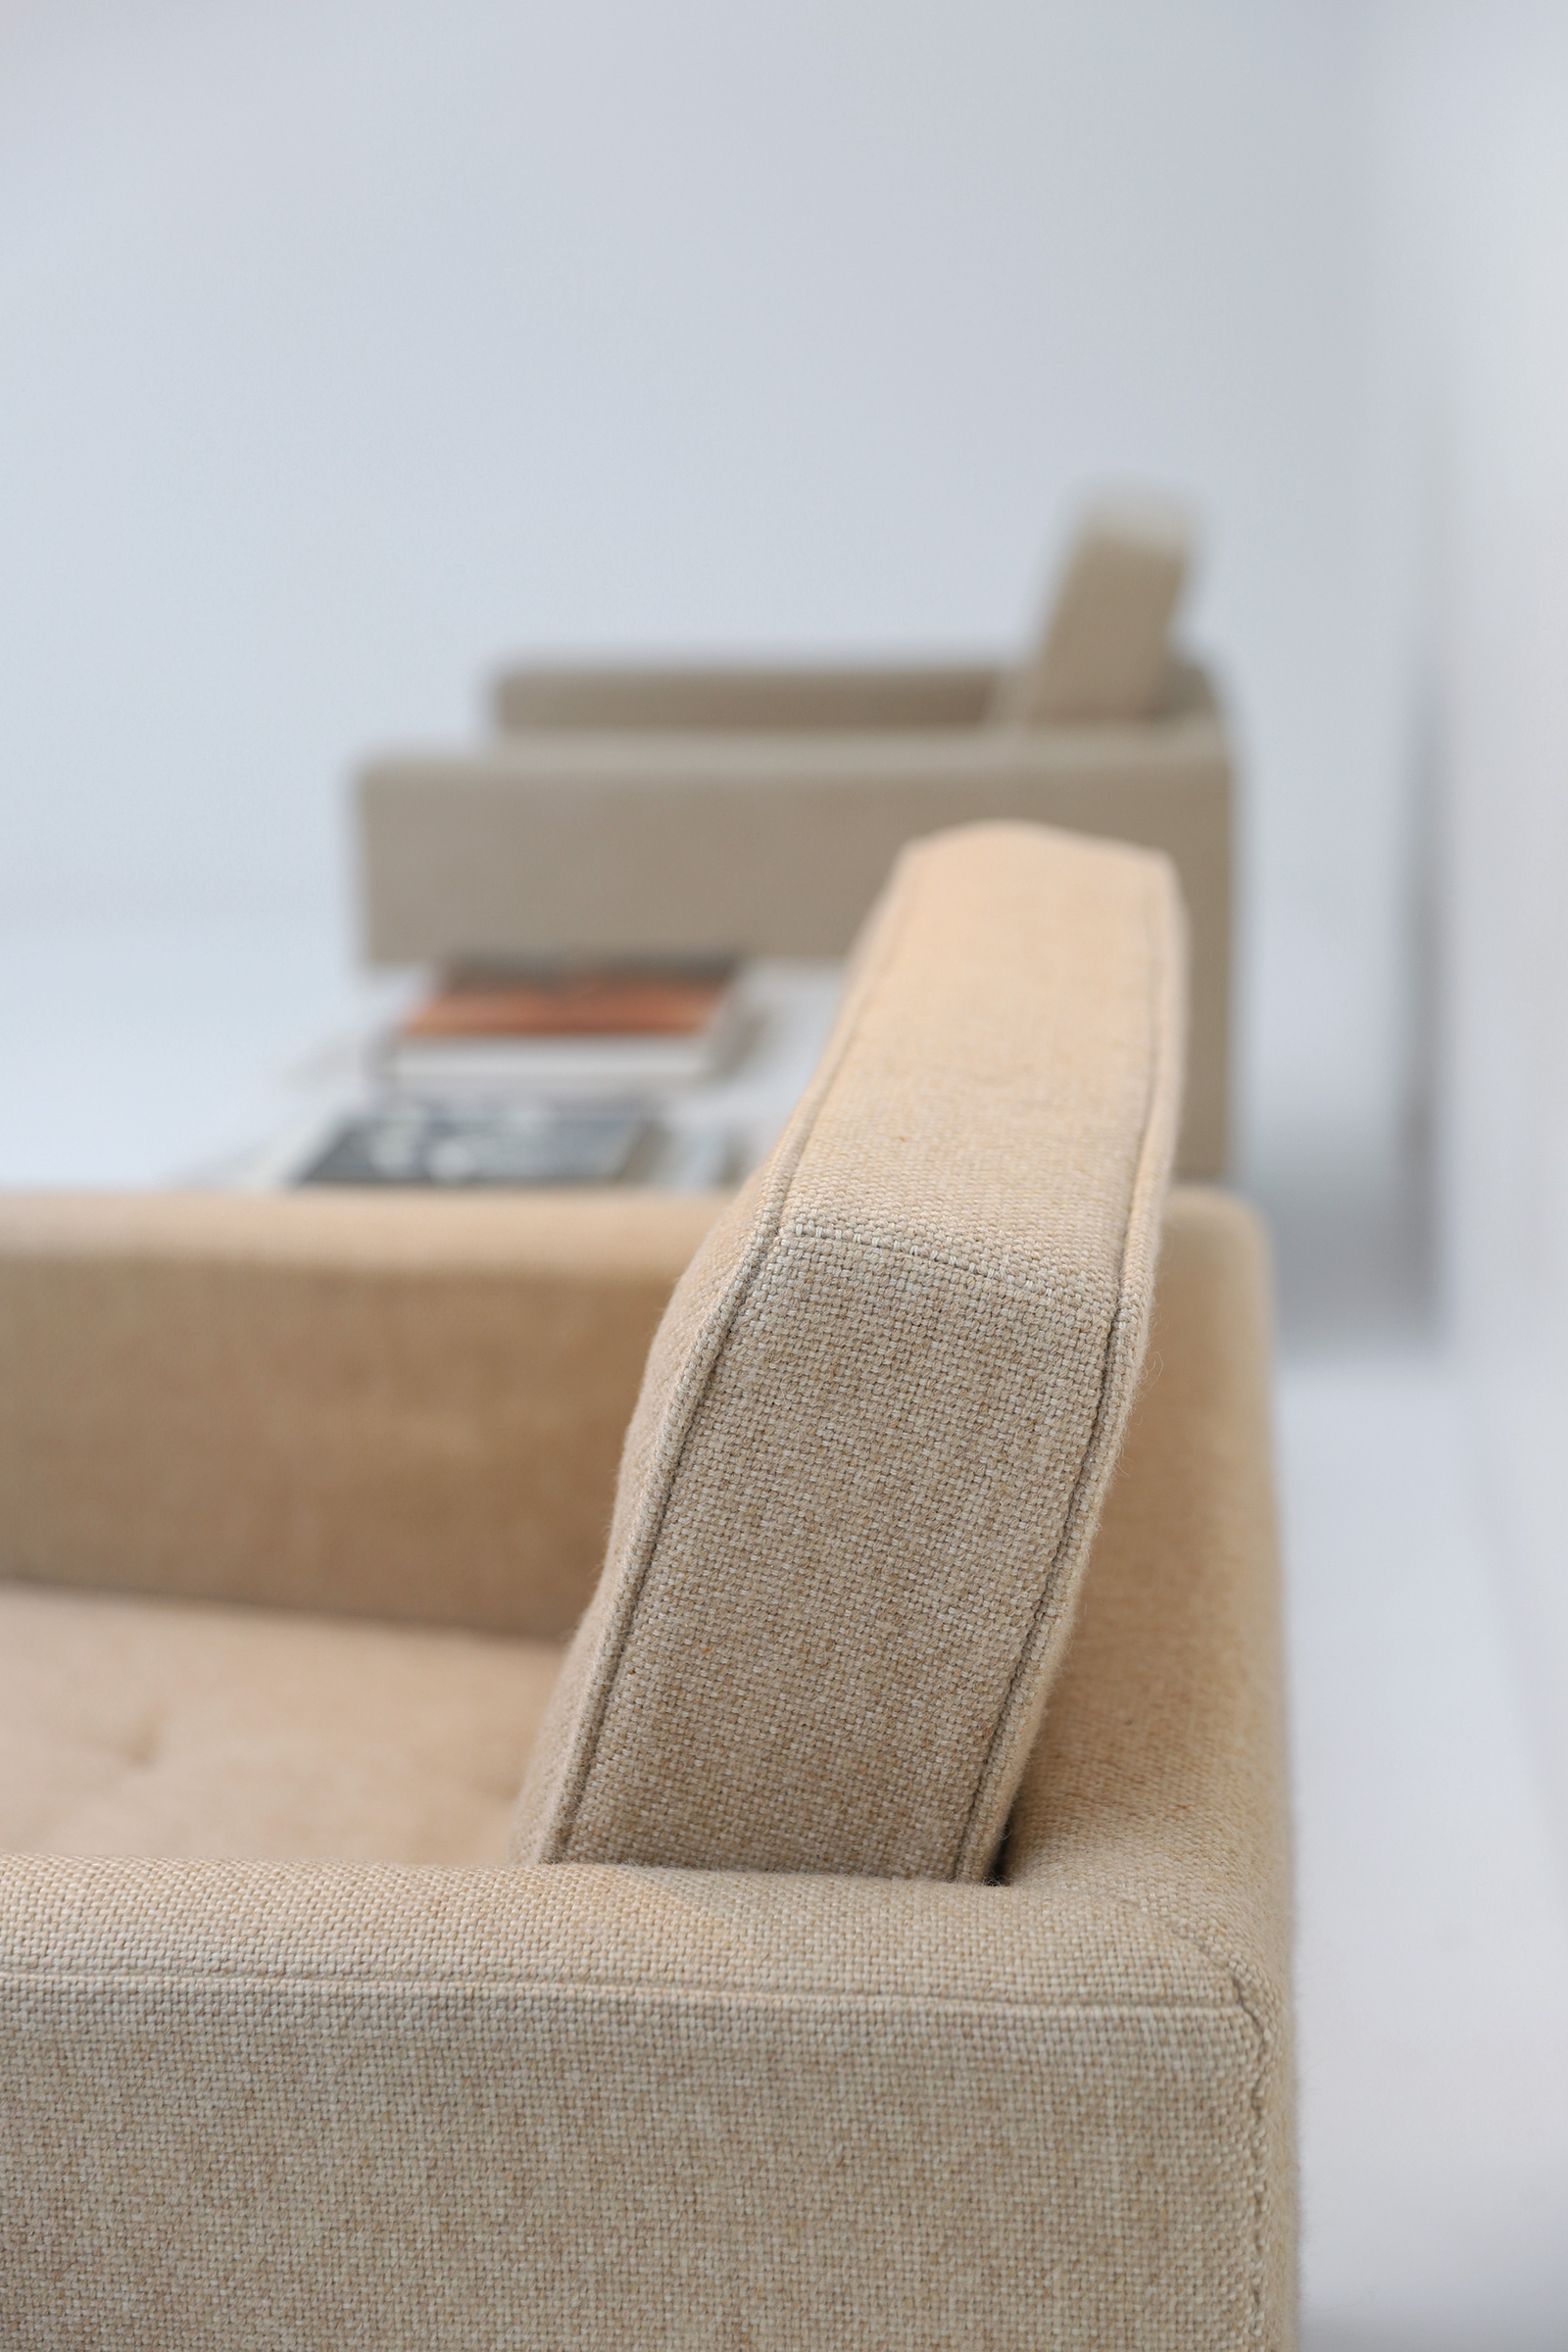 Florence Knoll Arm Chairsimage 10